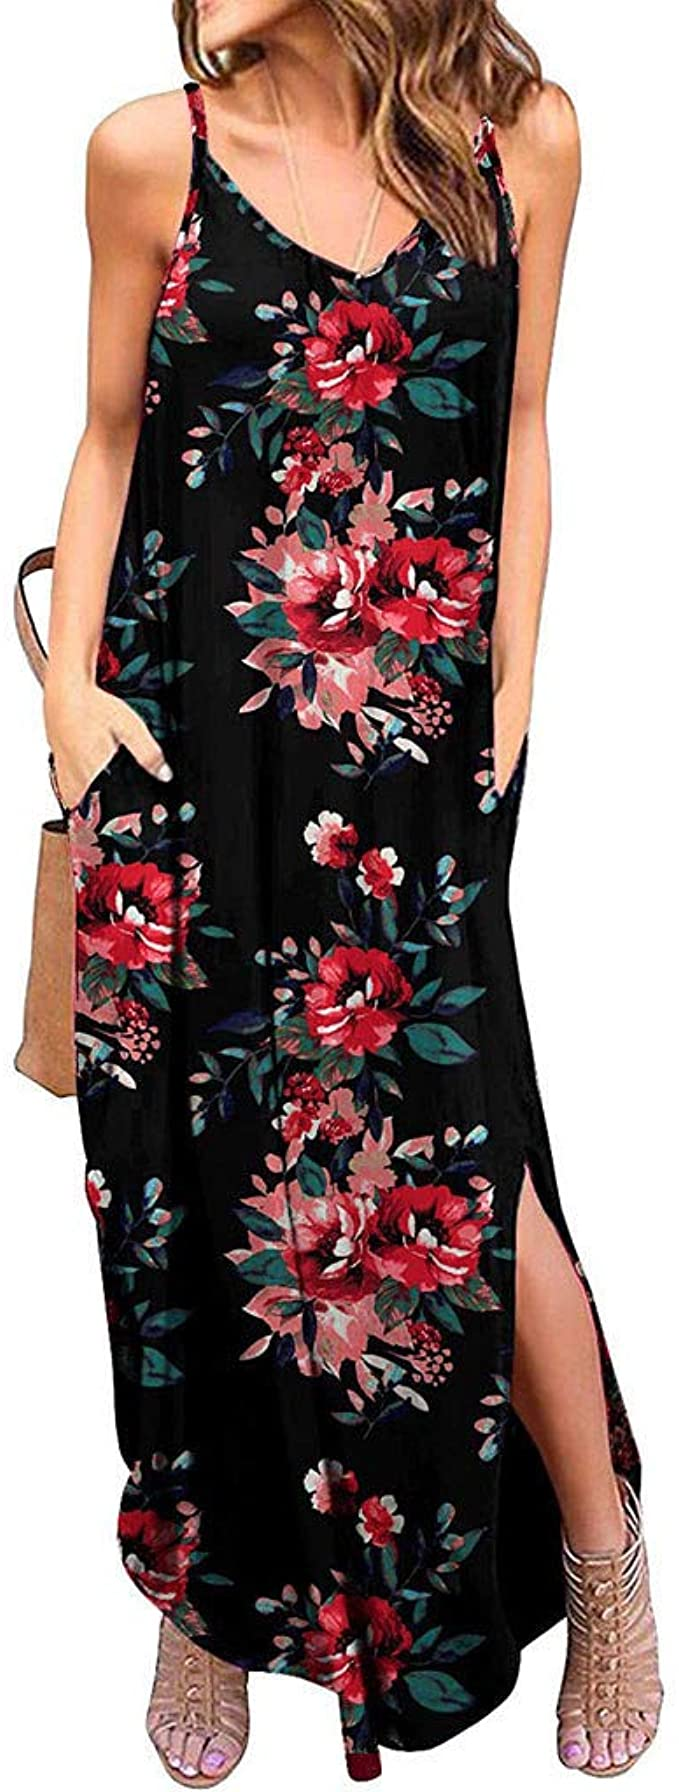 TAINAN Women's Summer Dress Casual Loose Beach Cover Up Long Print Cami Maxi Dresses with Pocket